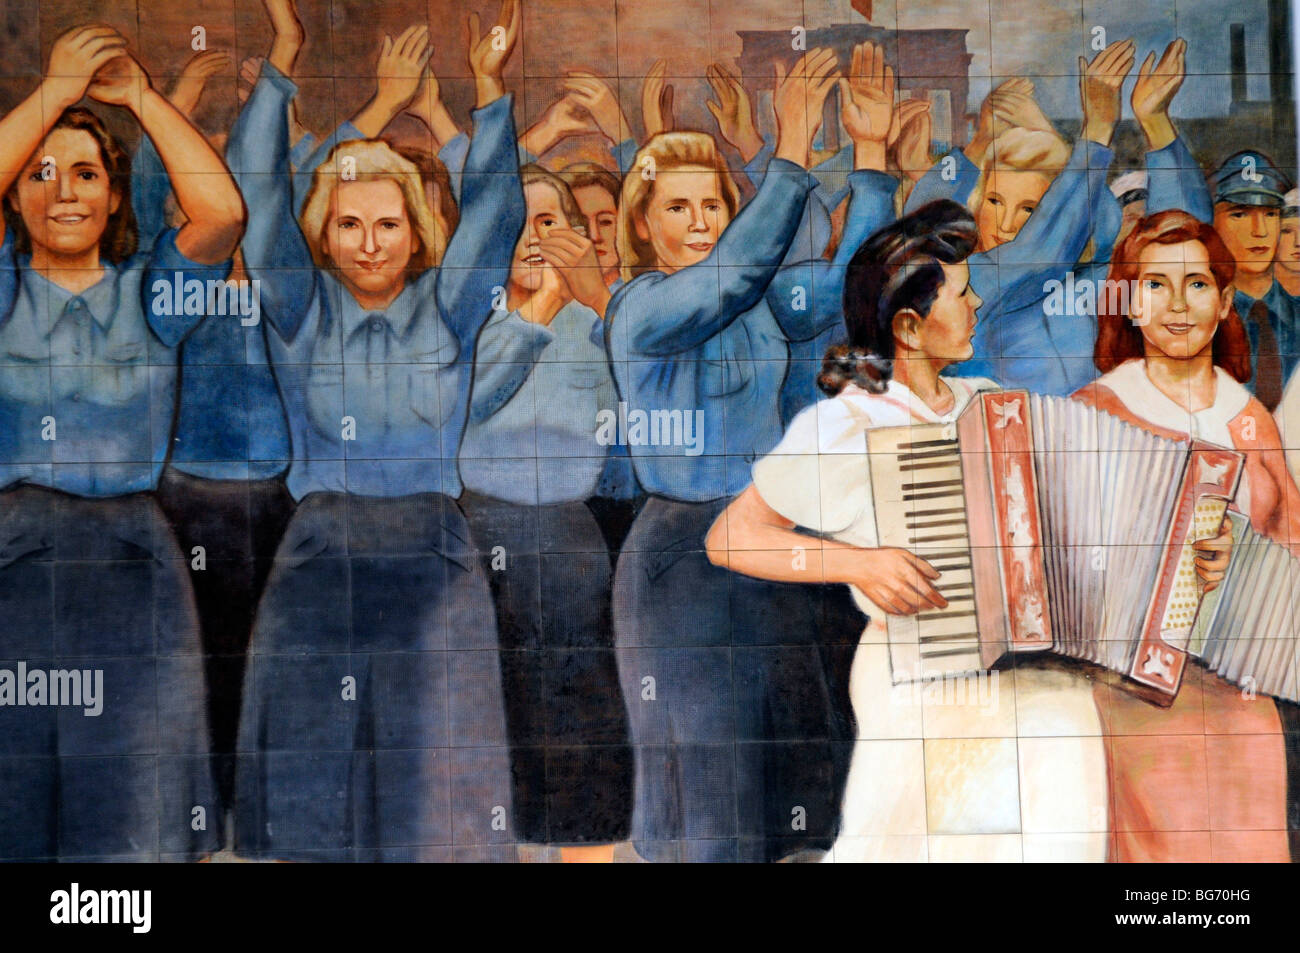 Mural depicting virtues of socialism on the Bundesministerium der finanzen (Federal Ministry of Finance), Berlin. - Stock Image